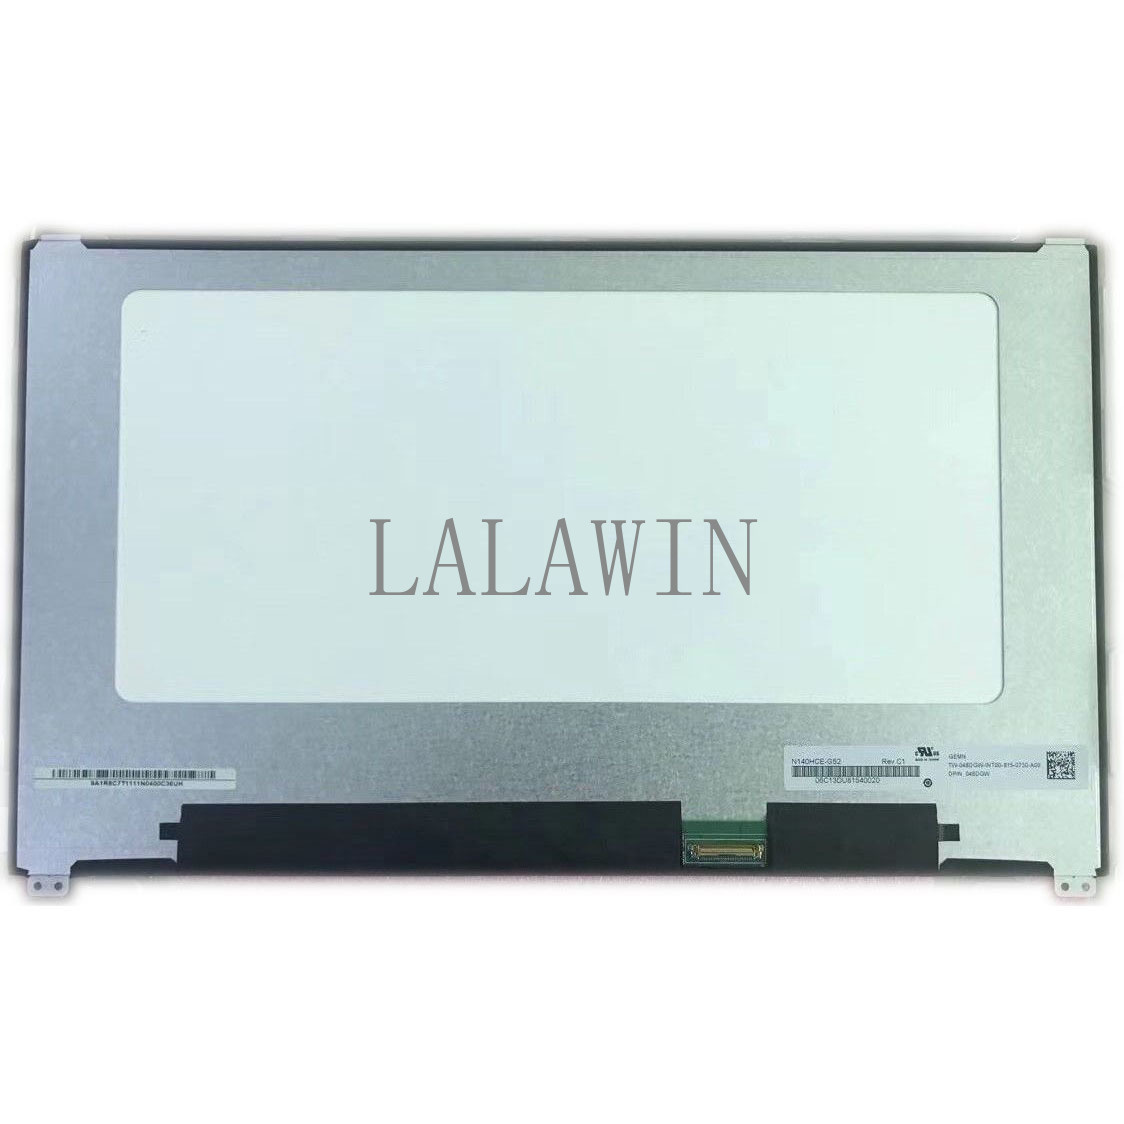 N140HCE-G52 Rev C1 fit NV140FHM-N47 B140HAN03.3 IPS LCD LED display Screen Replacement Panel For <font><b>Dell</b></font> <font><b>latitude</b></font> <font><b>7480</b></font> image